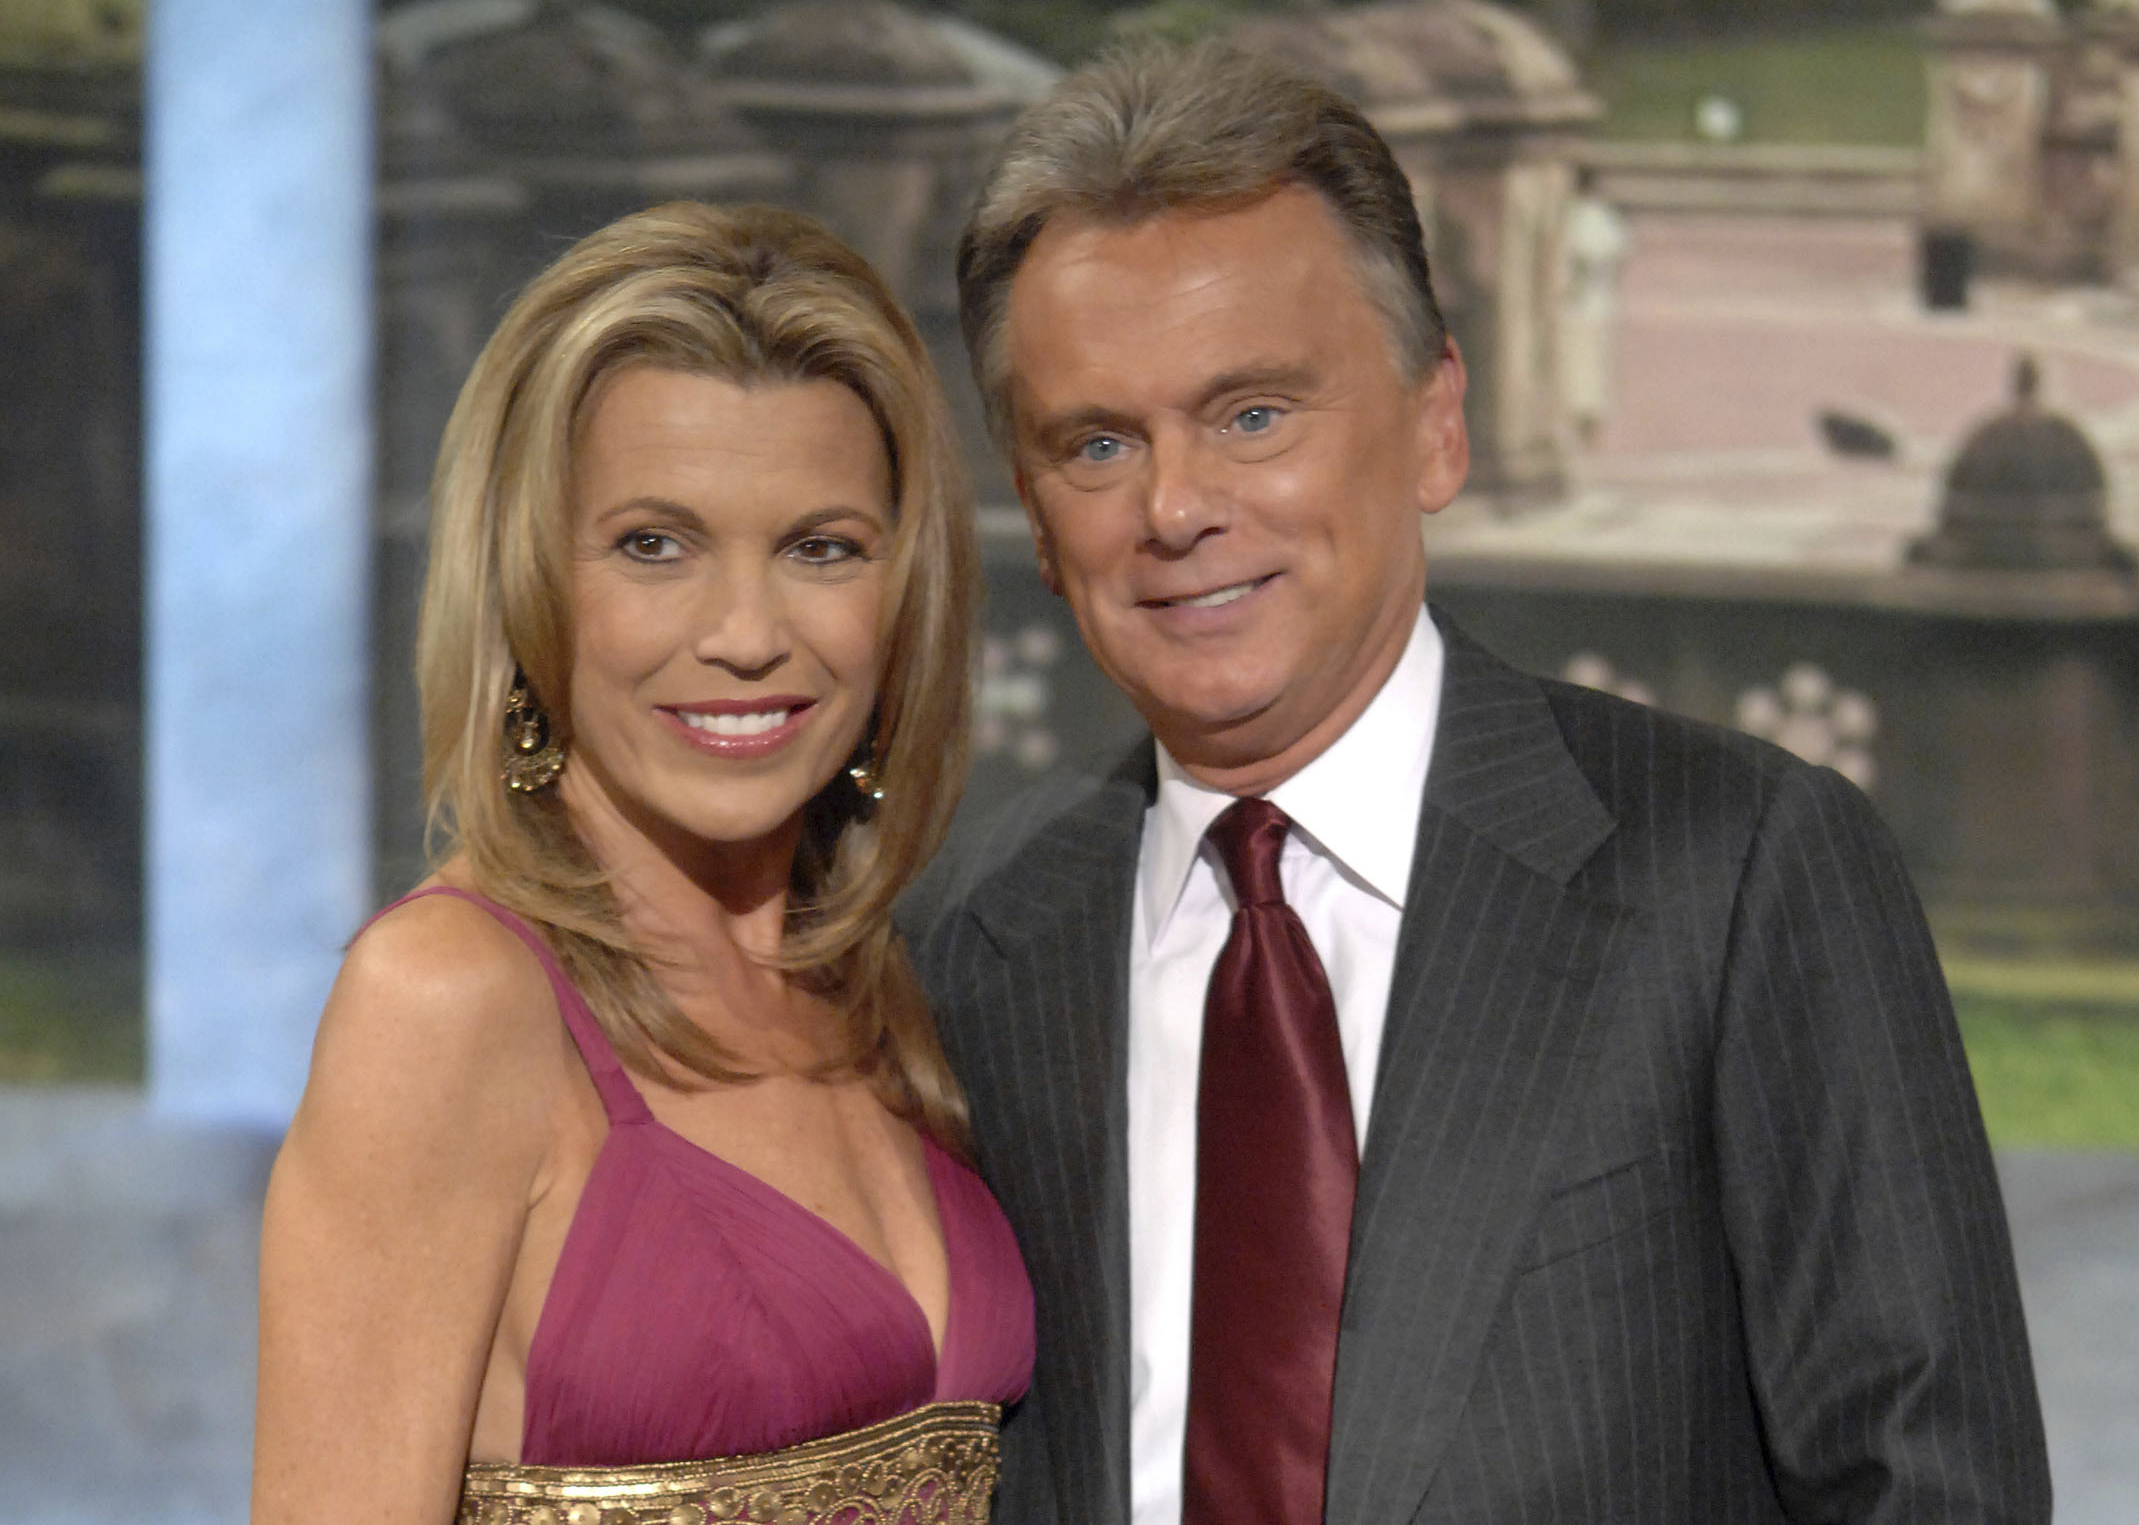 """Vanna White will host """"Wheel of Fortune"""" for the two-week """"Secret Santa Holiday Giveaway"""" episodes which were filmed in November asSajak recuperatedfollowingemergency surgeryfor a blocked intestine."""